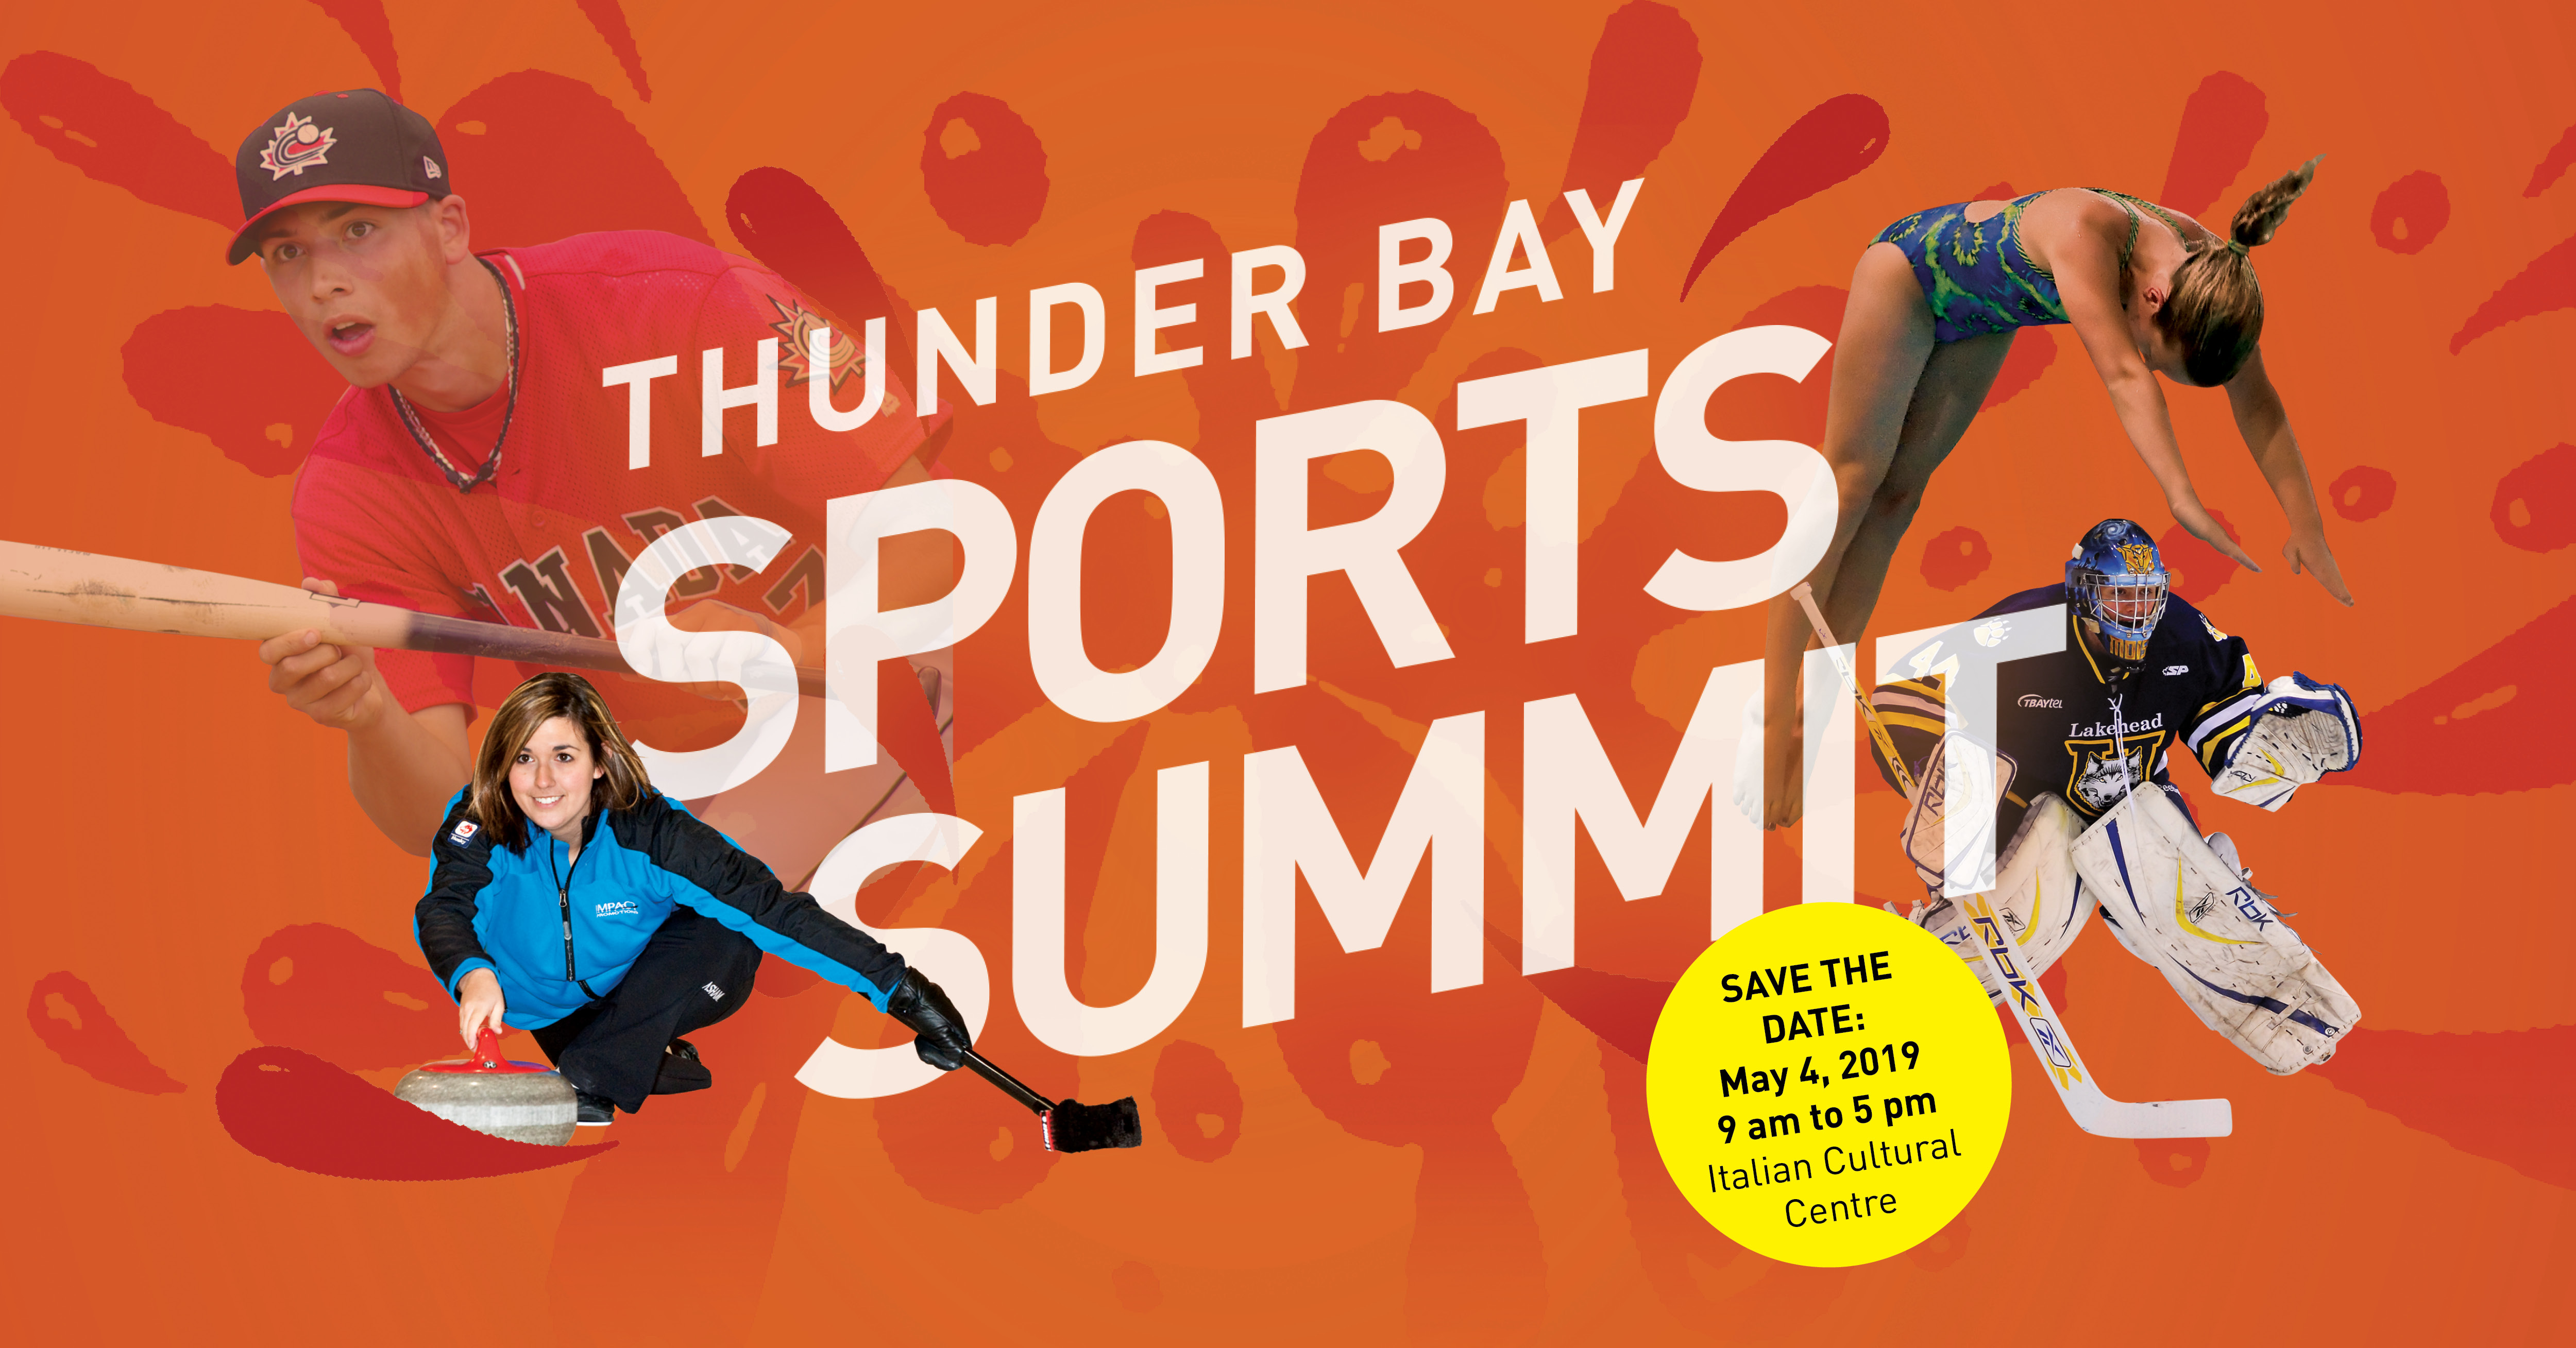 Thunder Bay Sports Summit promotional photo with various sports figures and save the date information.